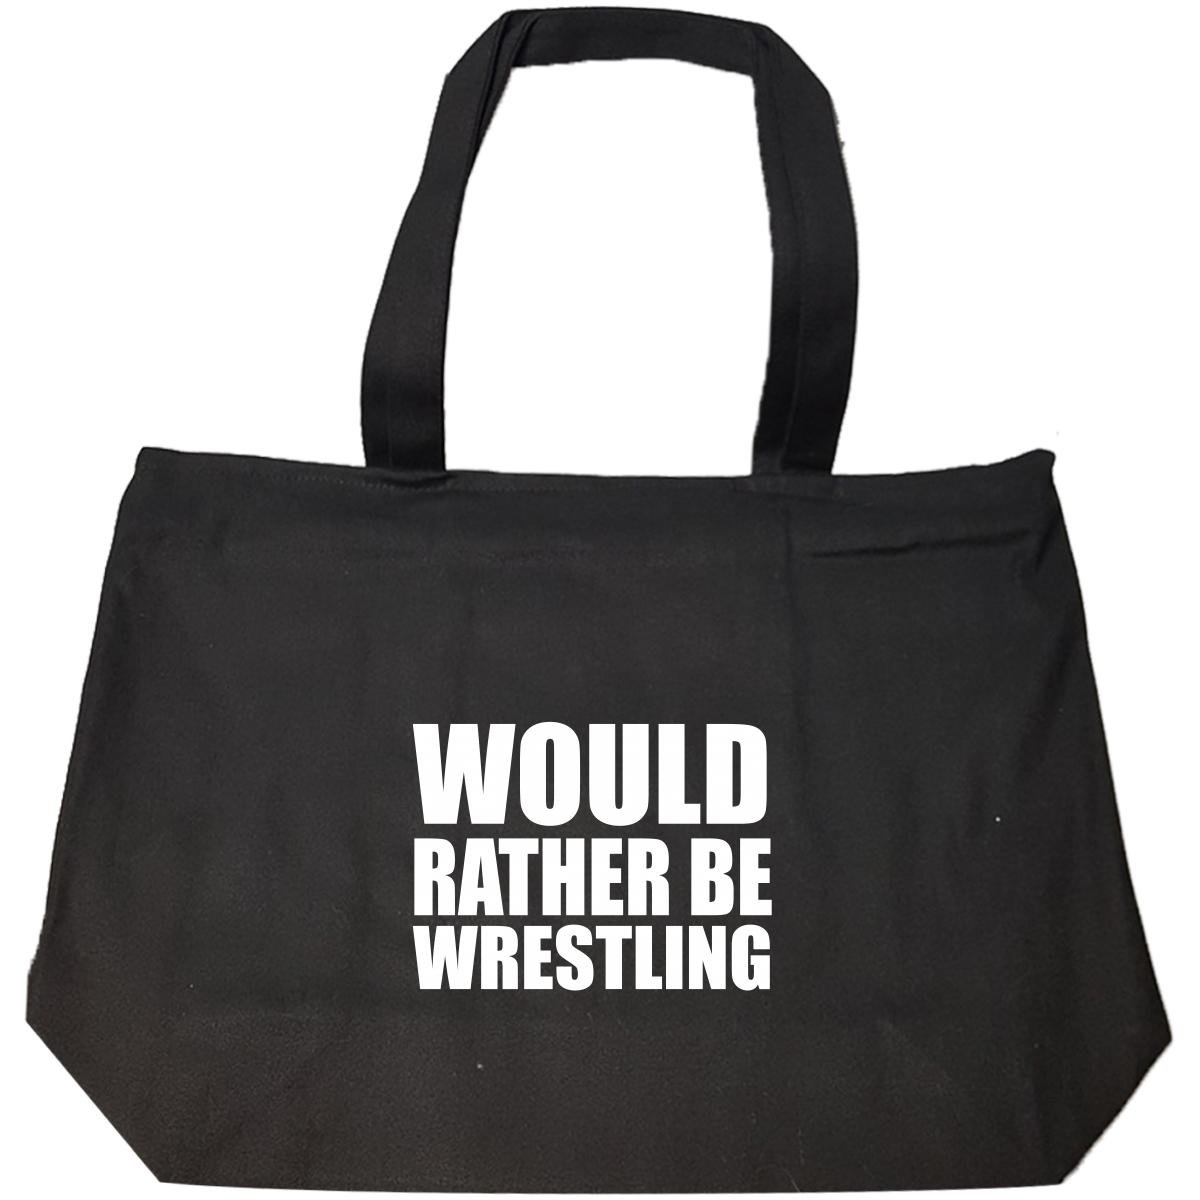 Would Rather Be Wrestling - Tote Bag With Zip by Brands Banned